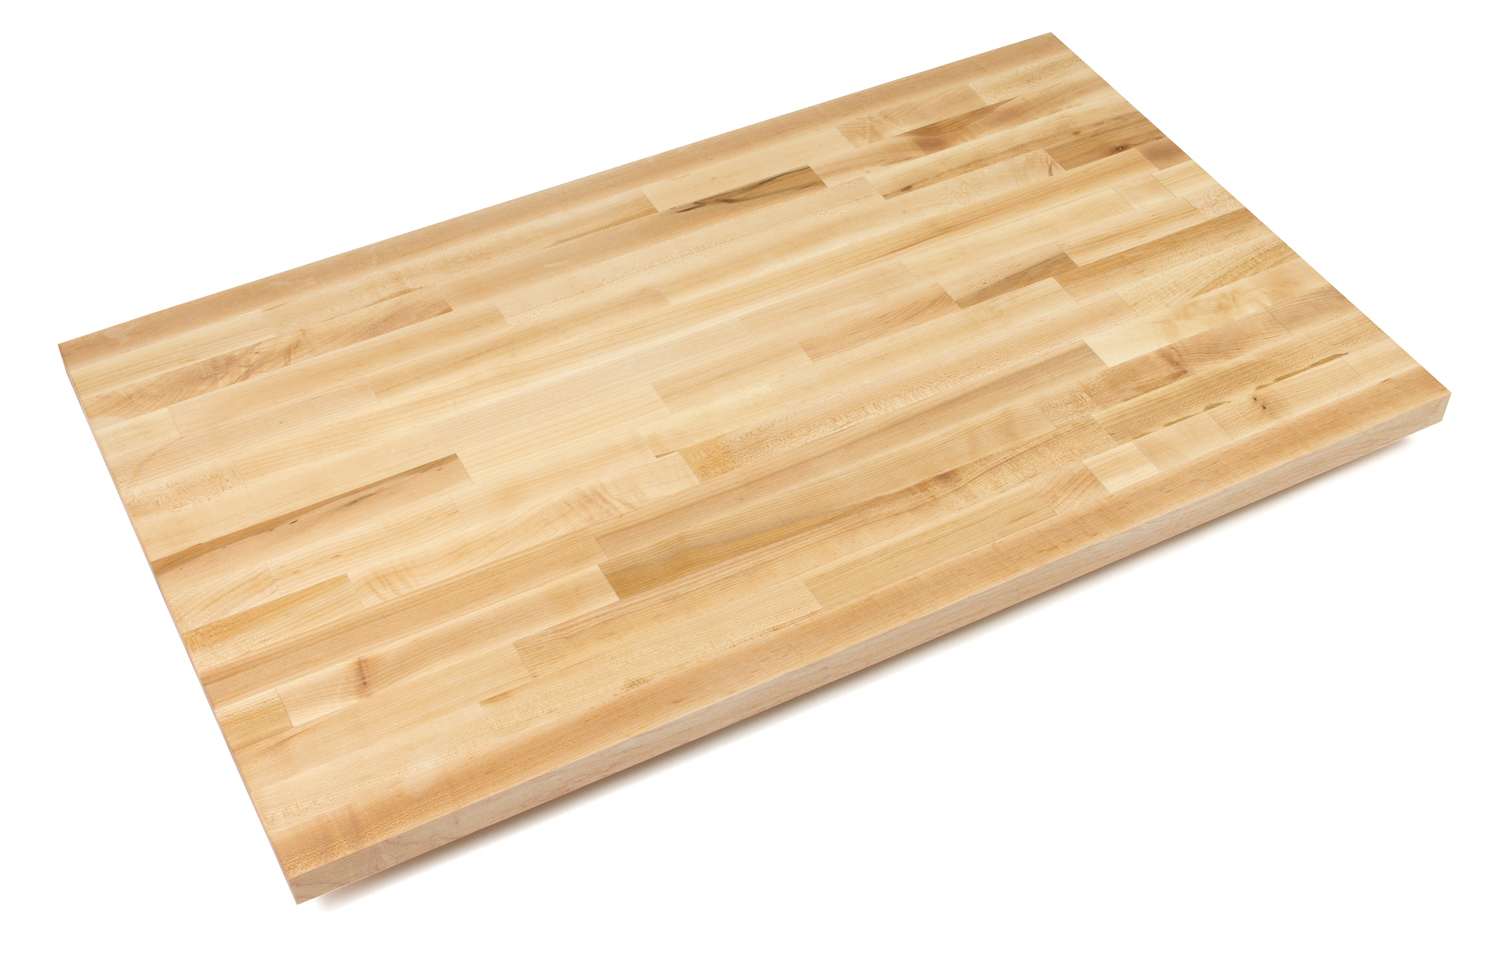 Butcher Block (72